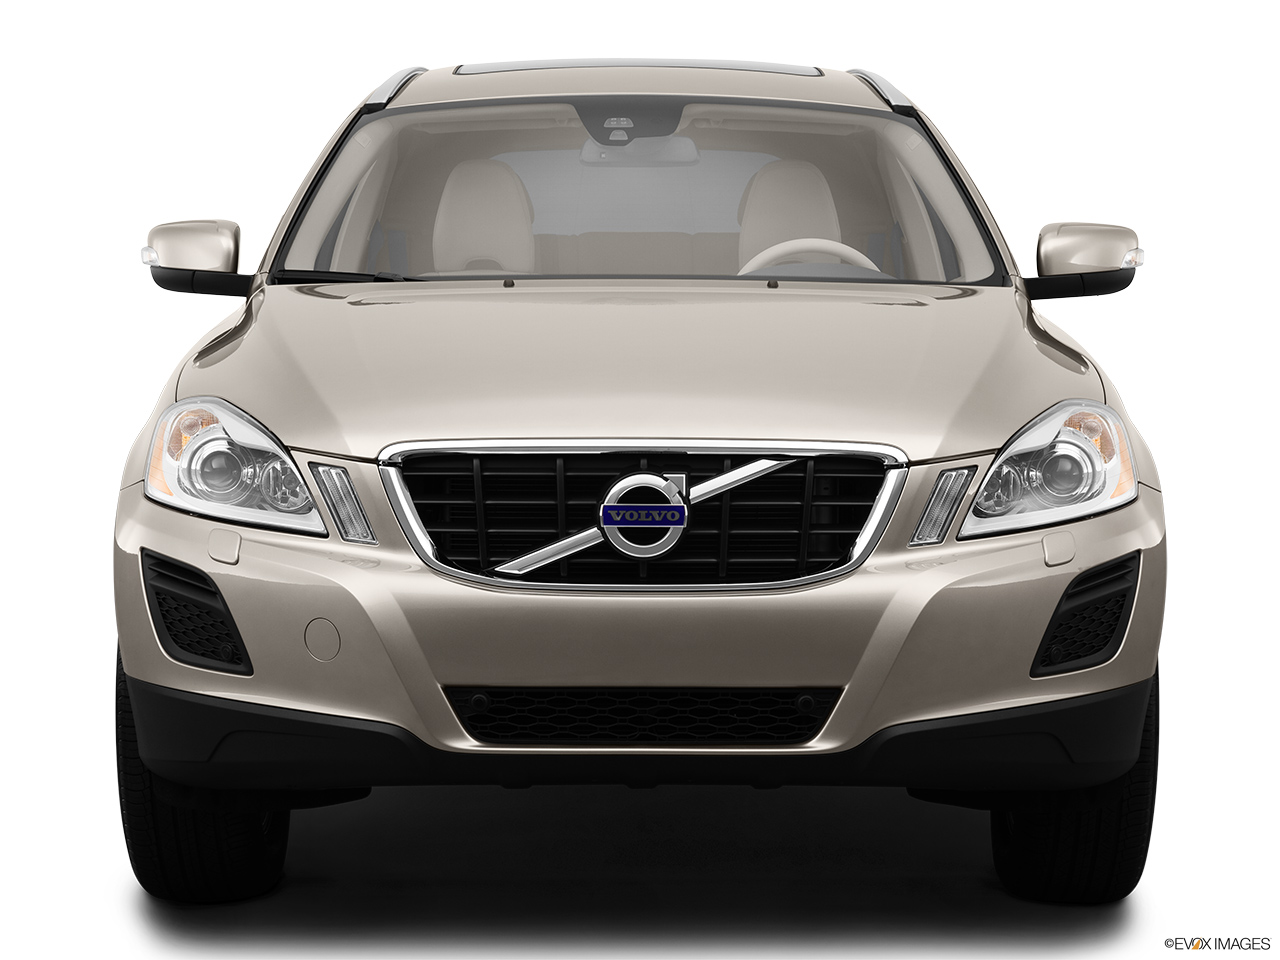 2013 Volvo XC60 3.2 FWD Premier Plus Low/wide front.